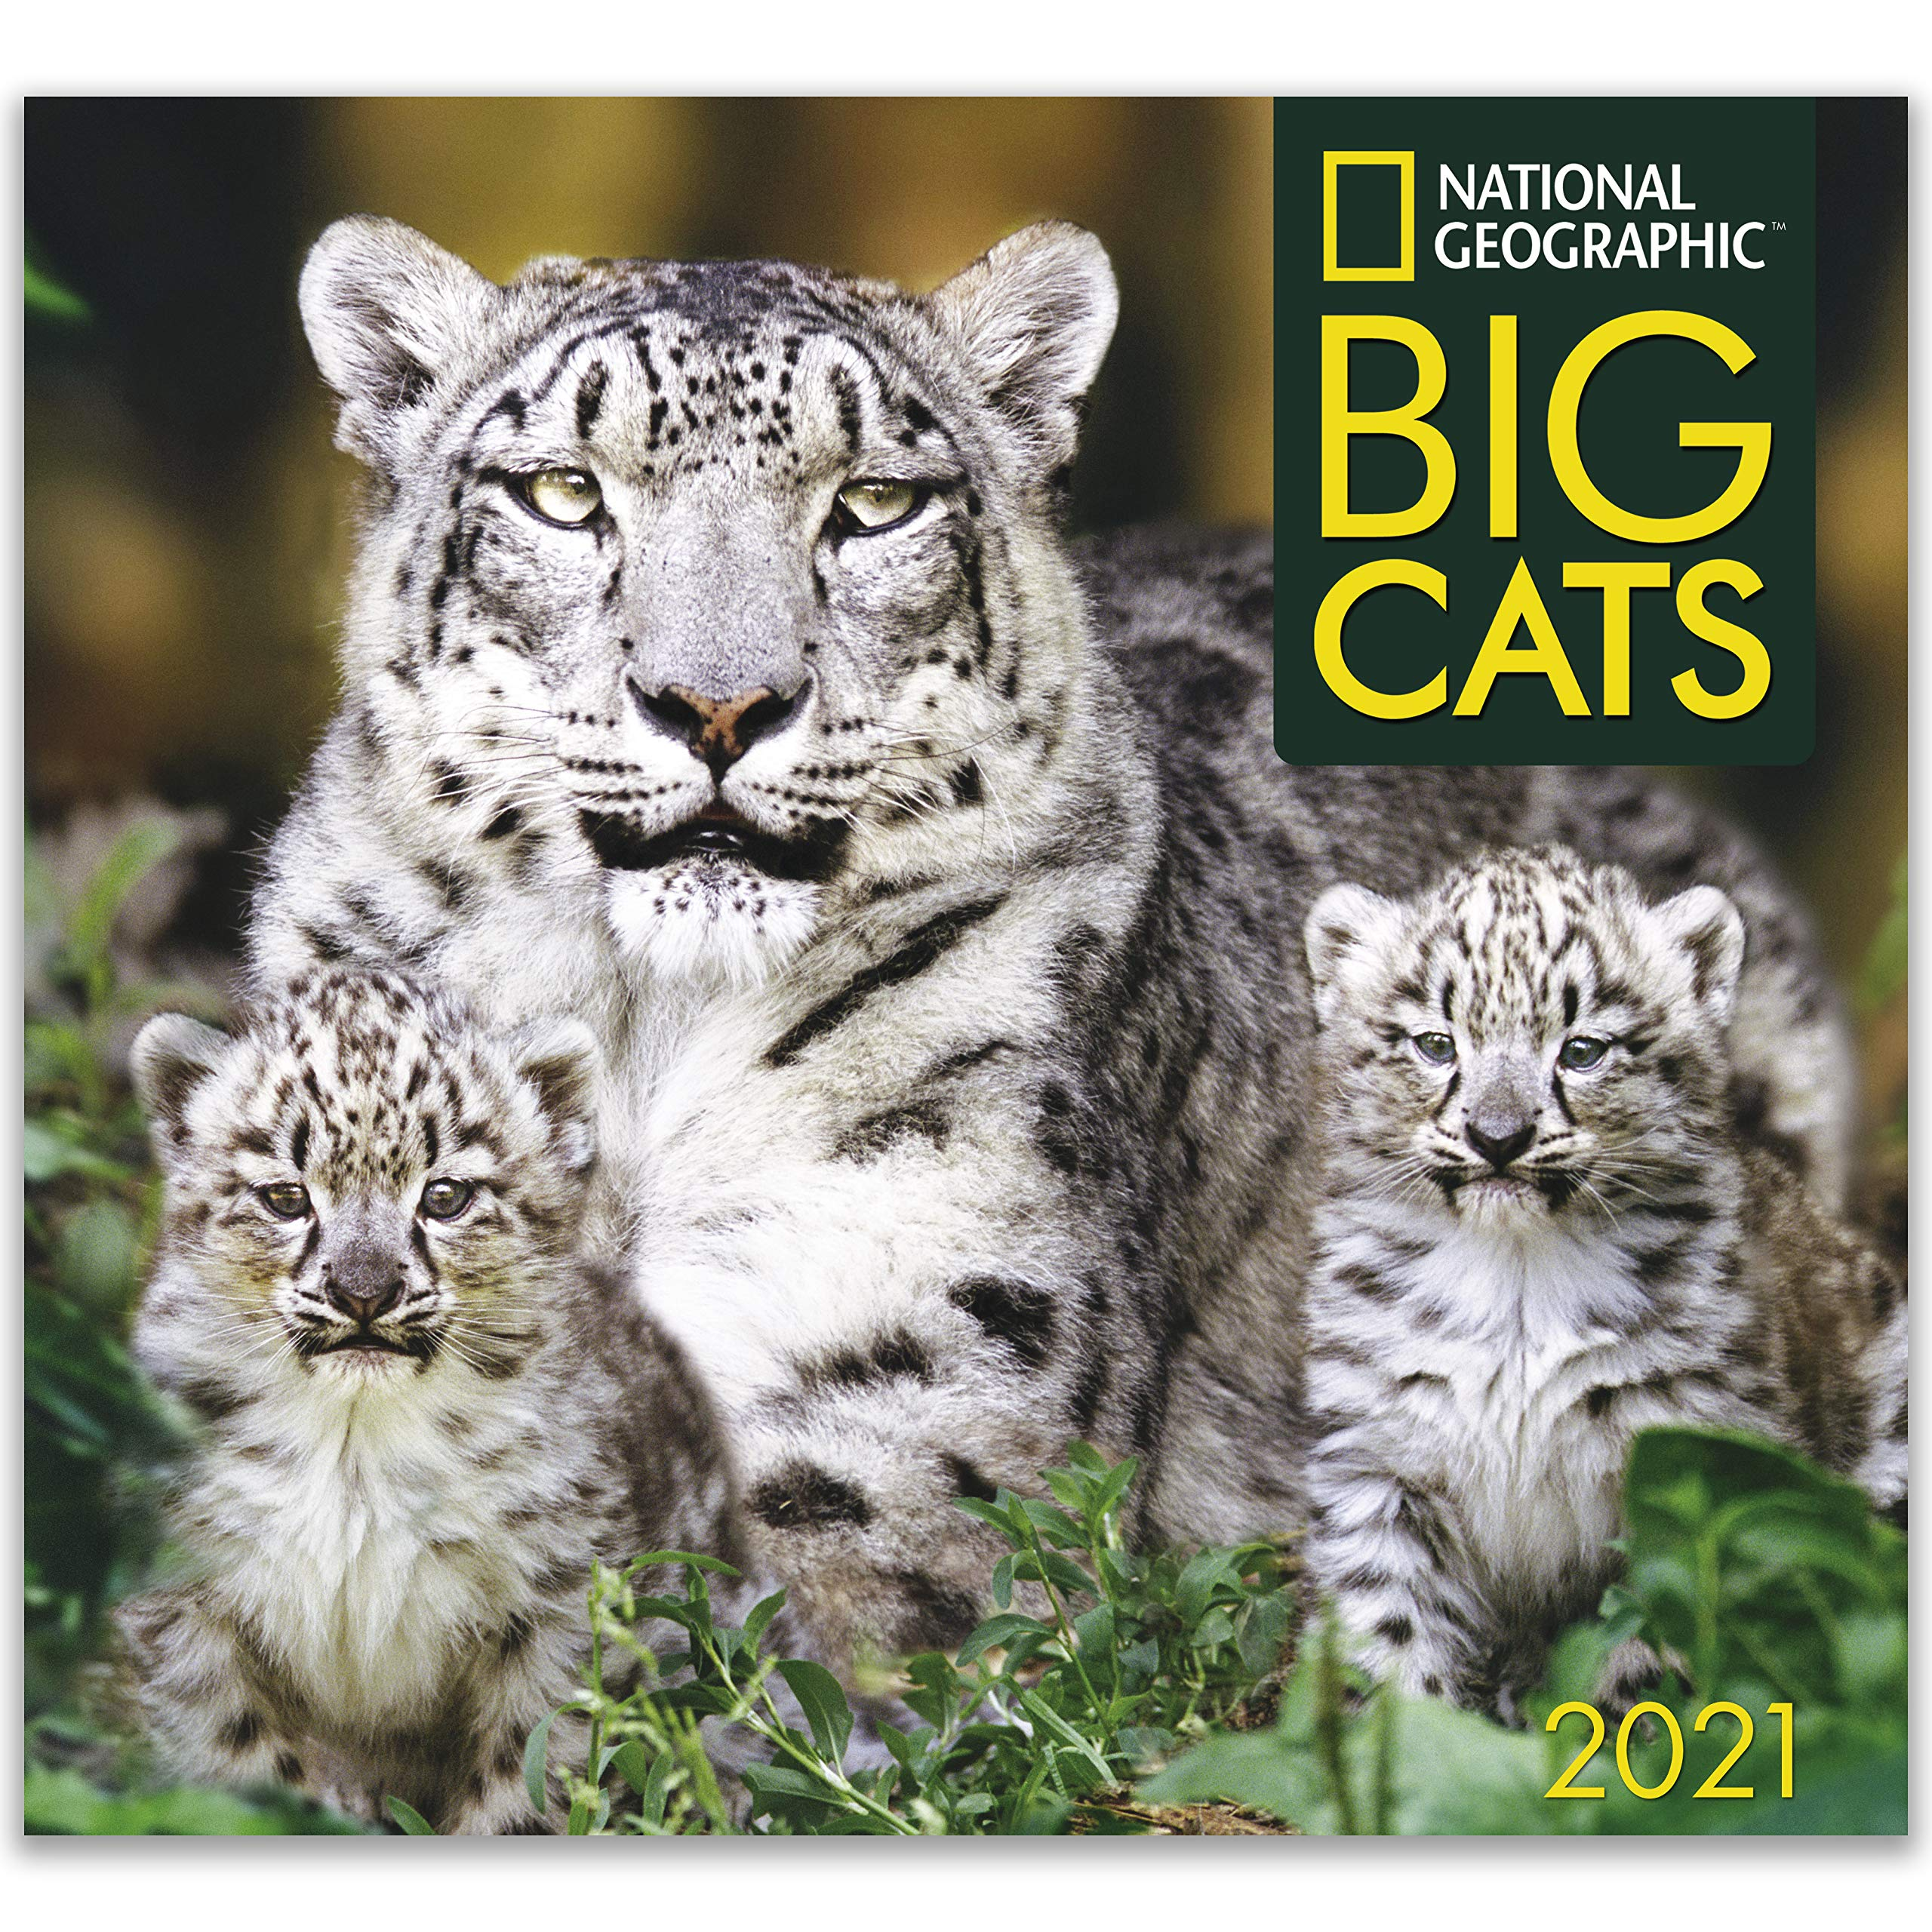 National Geographic Big Cats 2021 Wall Calendar: Zebra Publishing